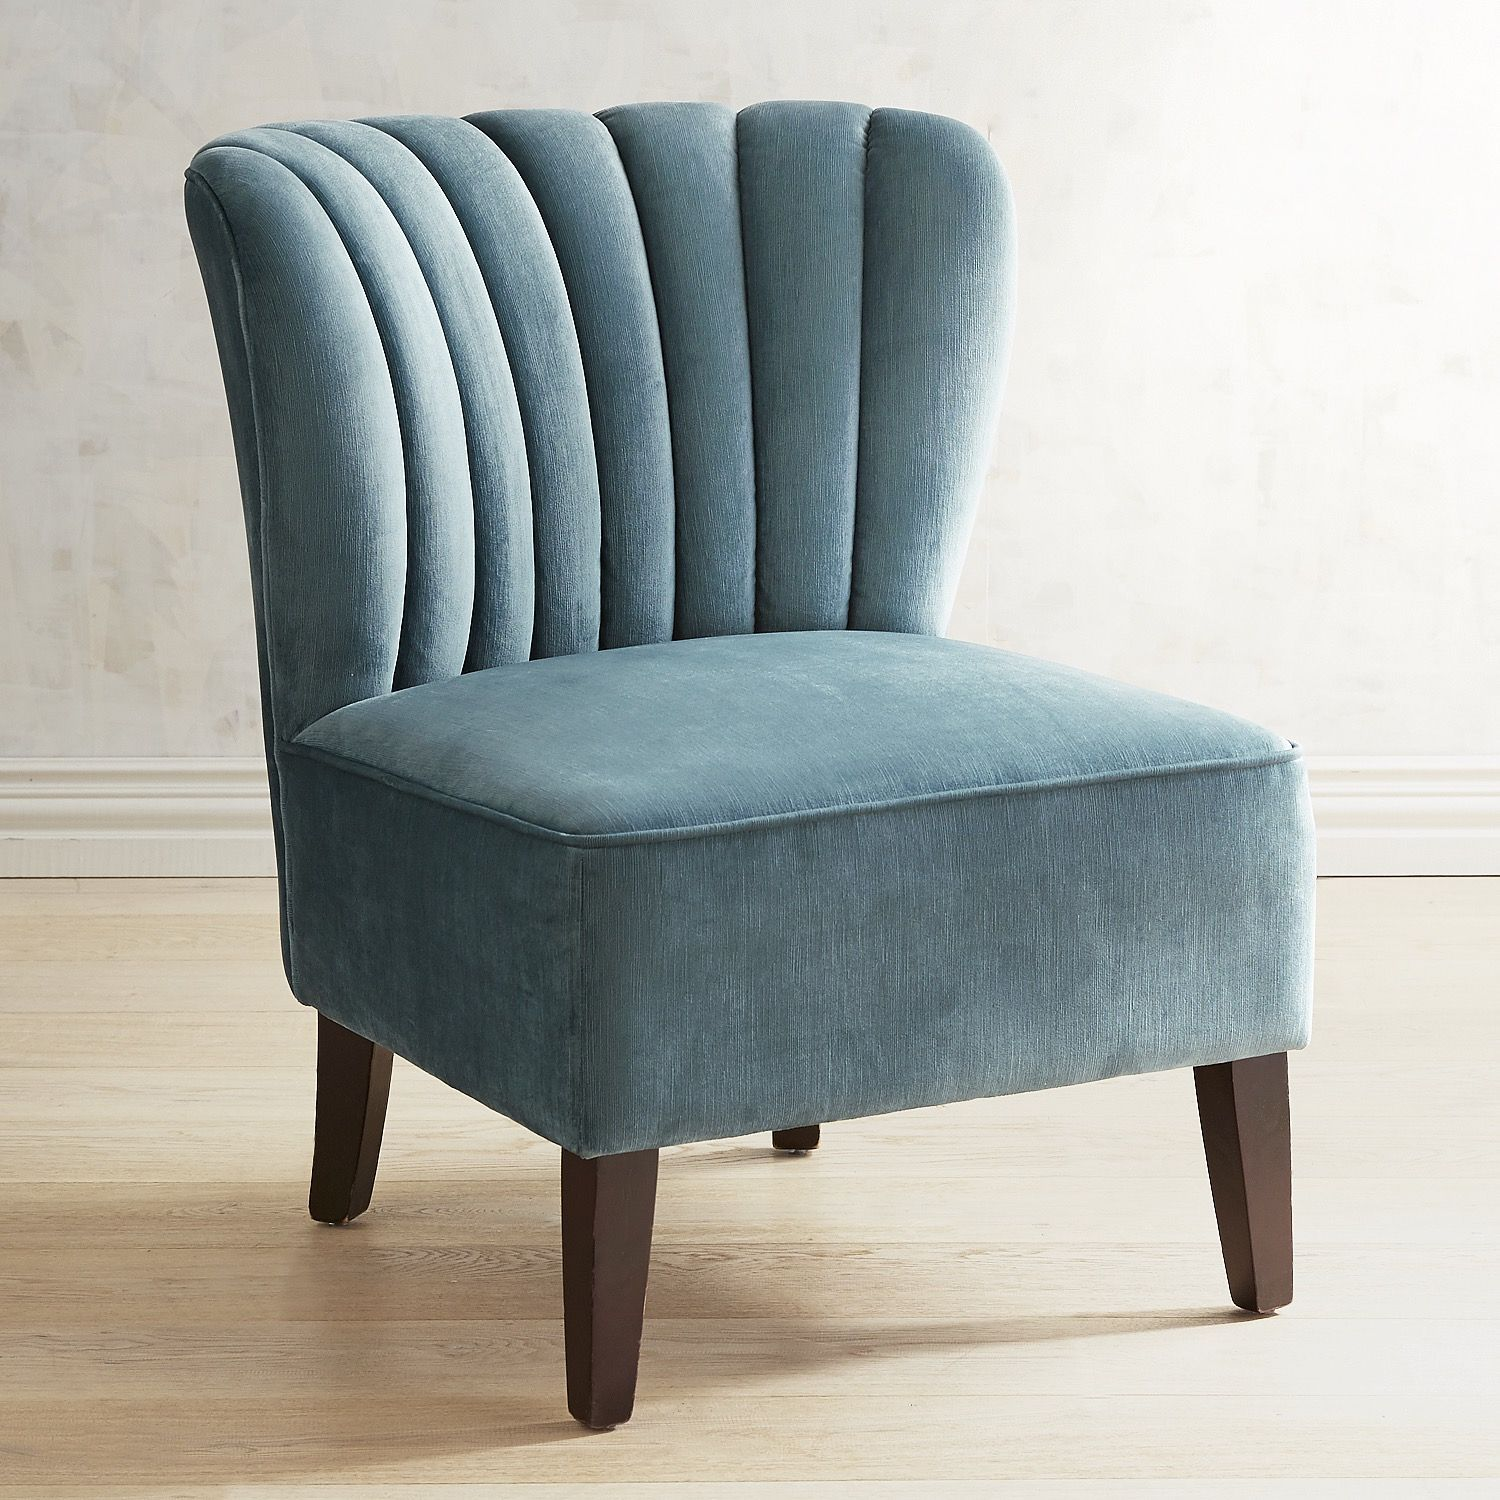 Emille Pool Blue Channel Back Chair In 2019 Furniture